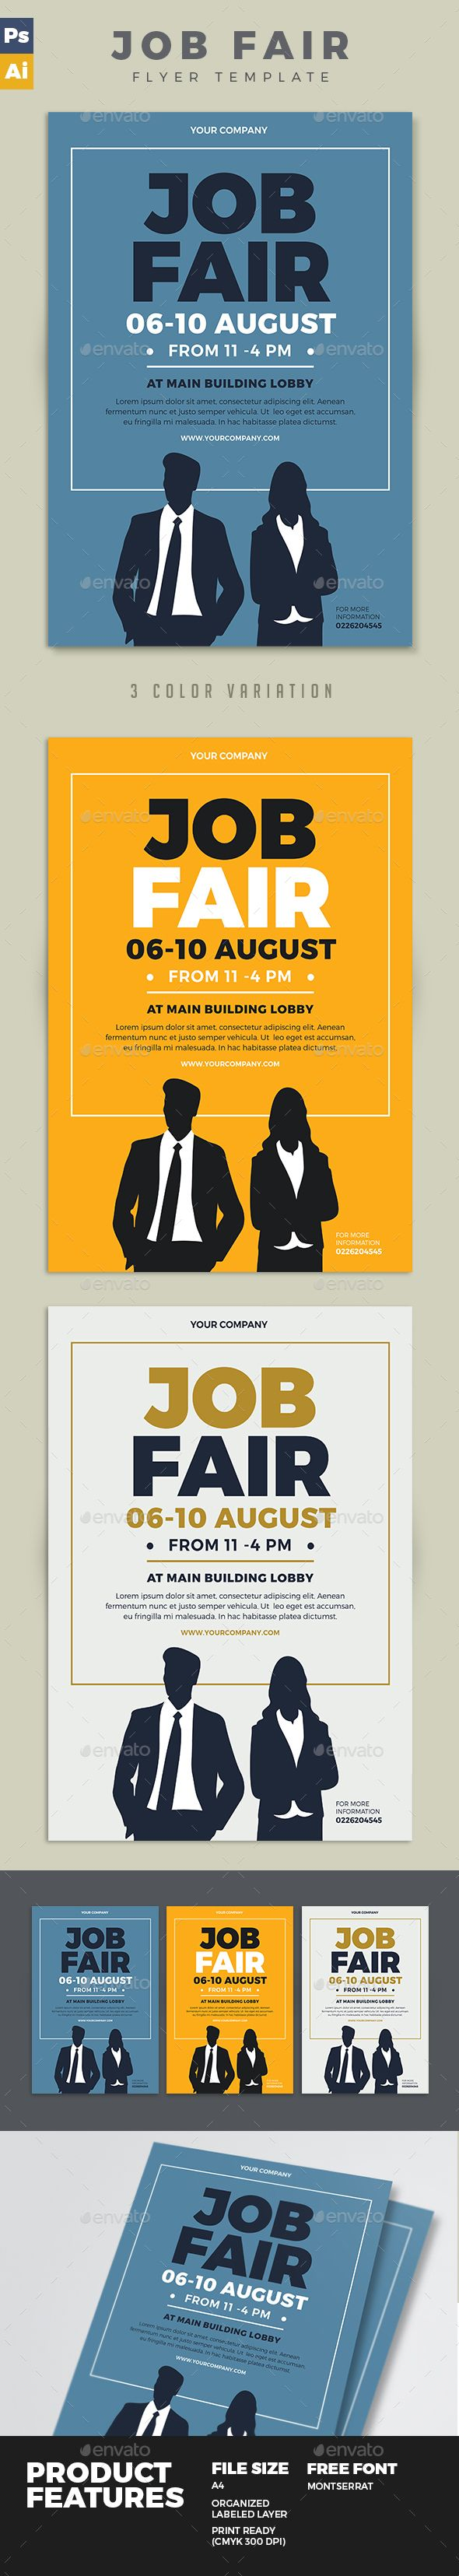 Poster design download - Job Fair Flyer